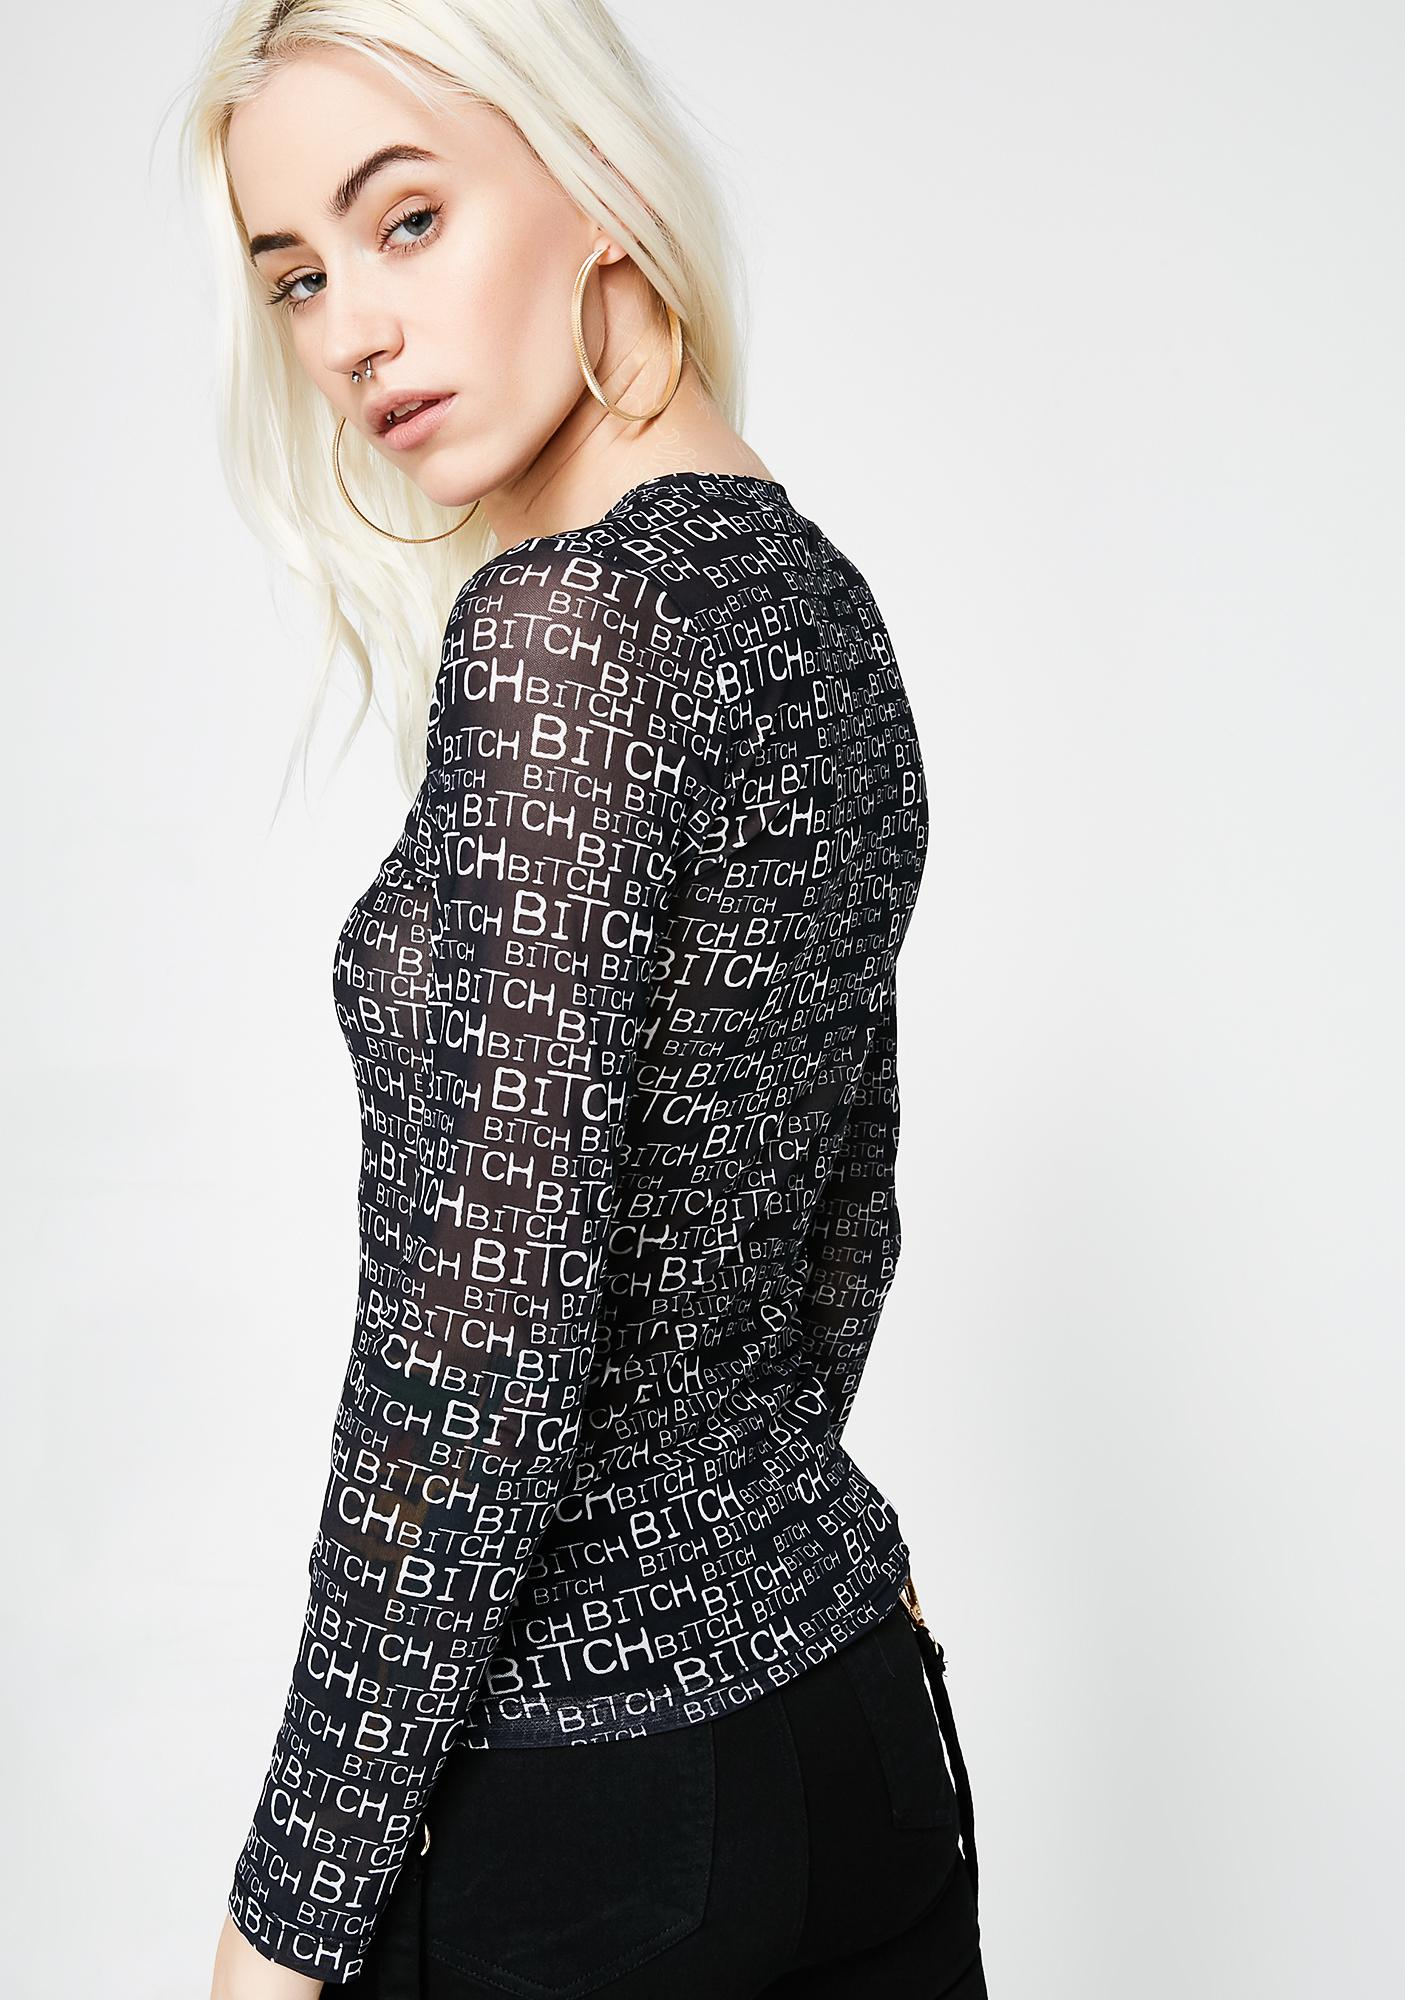 Kiki Riki Head Beezy Mesh Long Sleeve Top